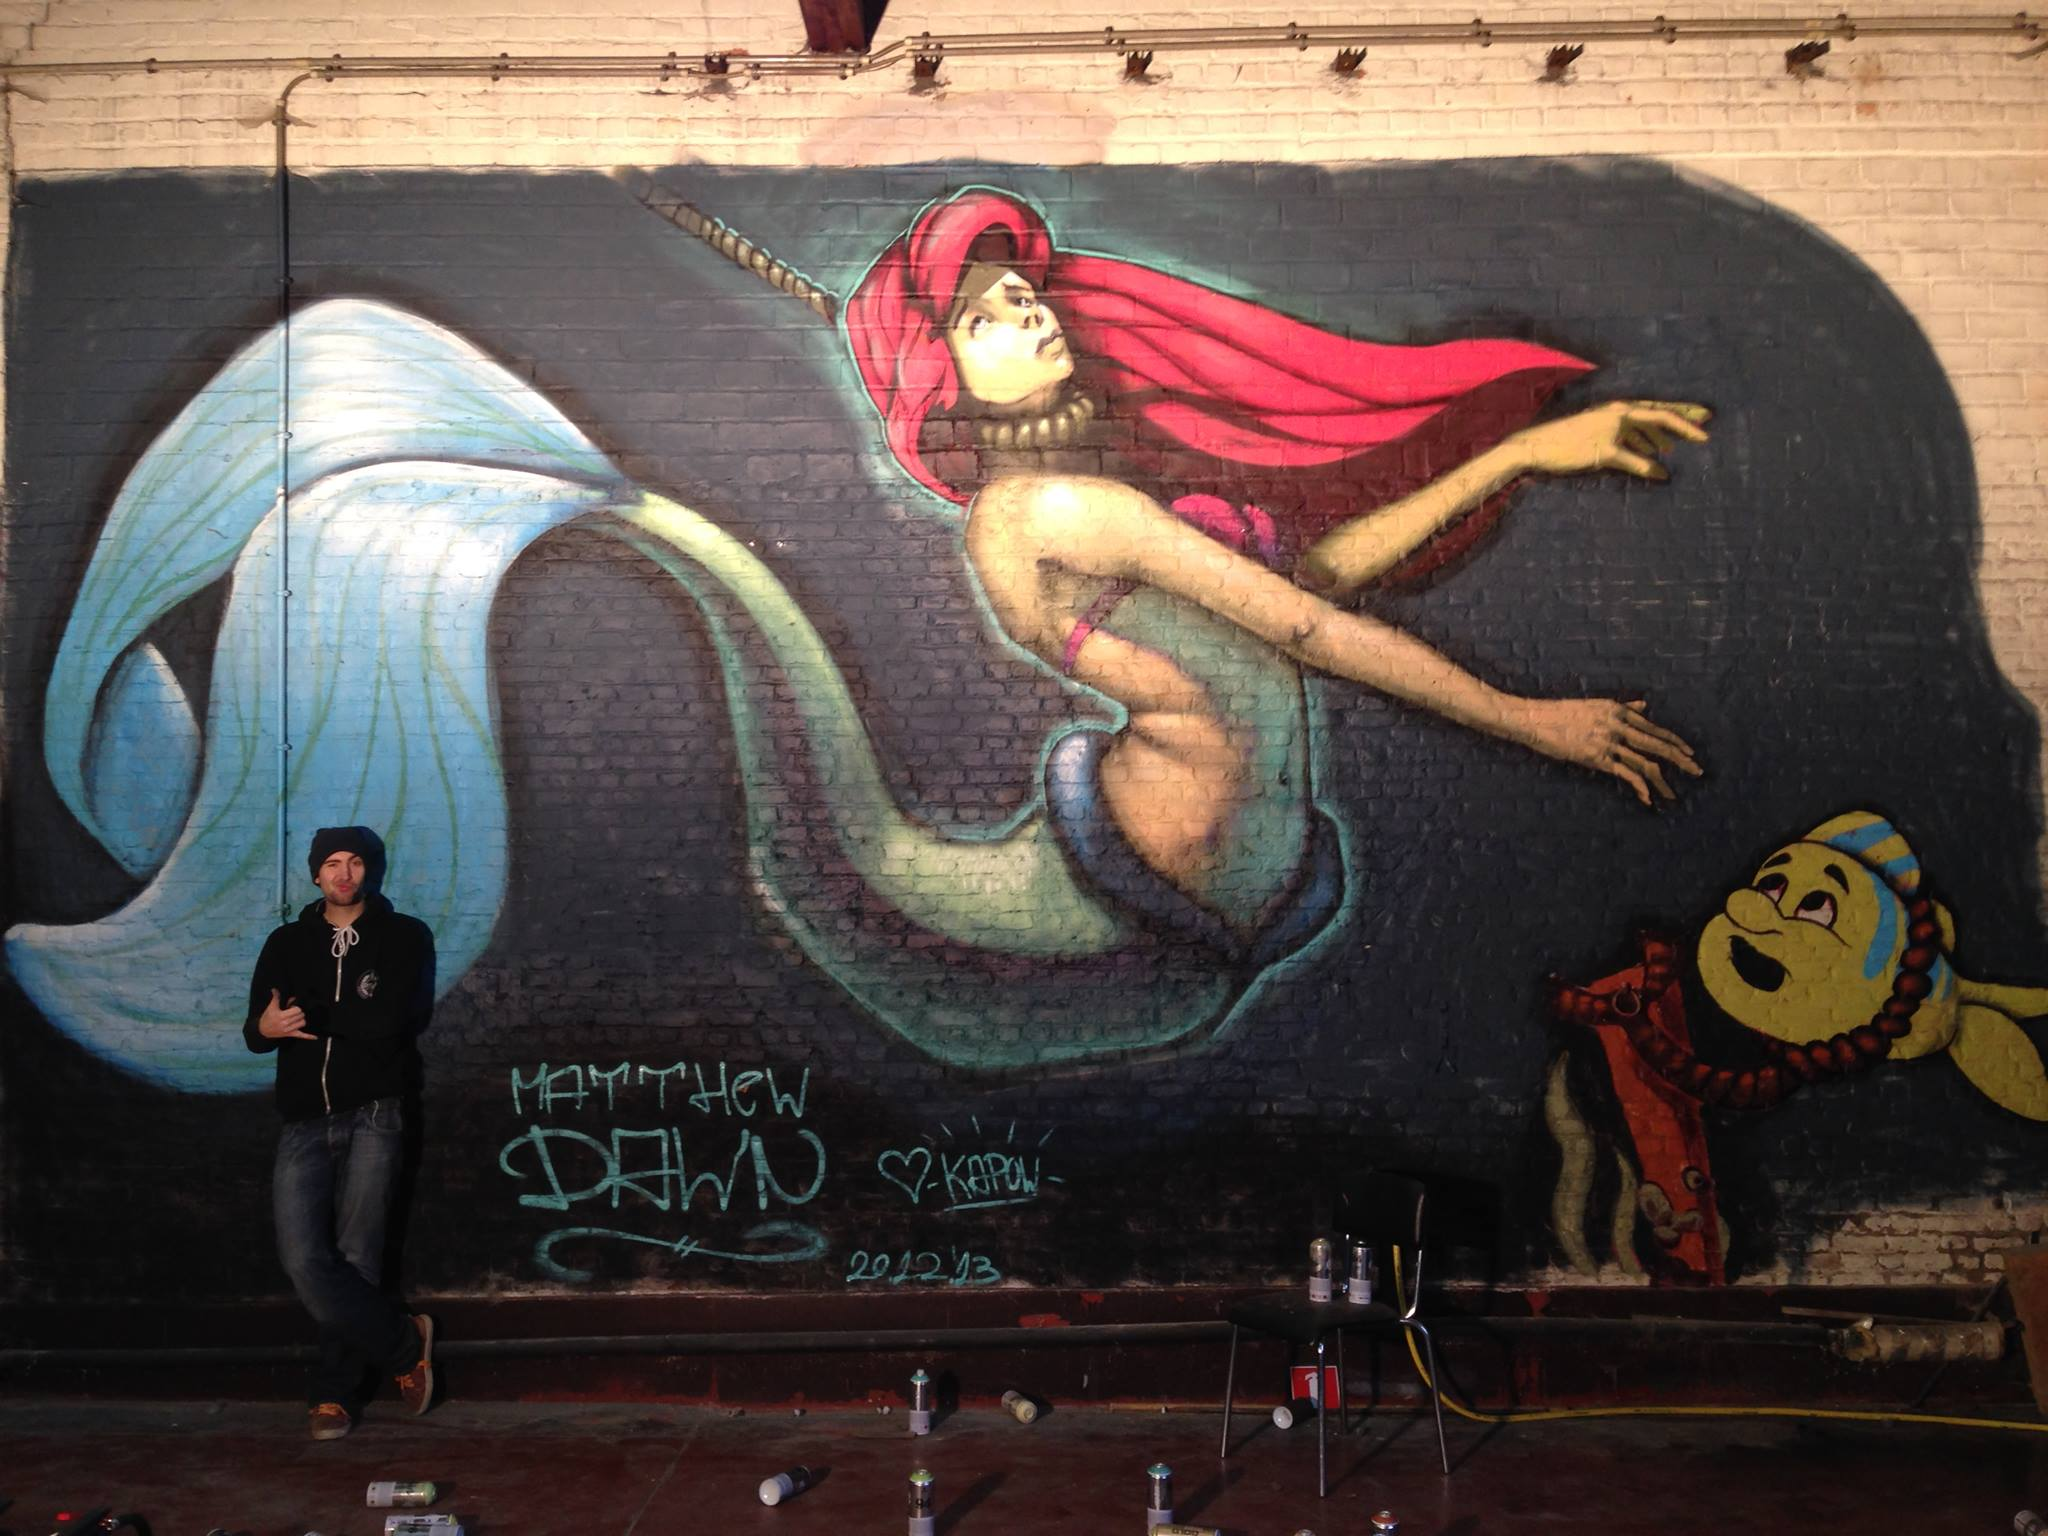 Matthew Dawn Graffiti Artist The Little Mermaid Ghent Belgium - Street Art Graffiti Belgium